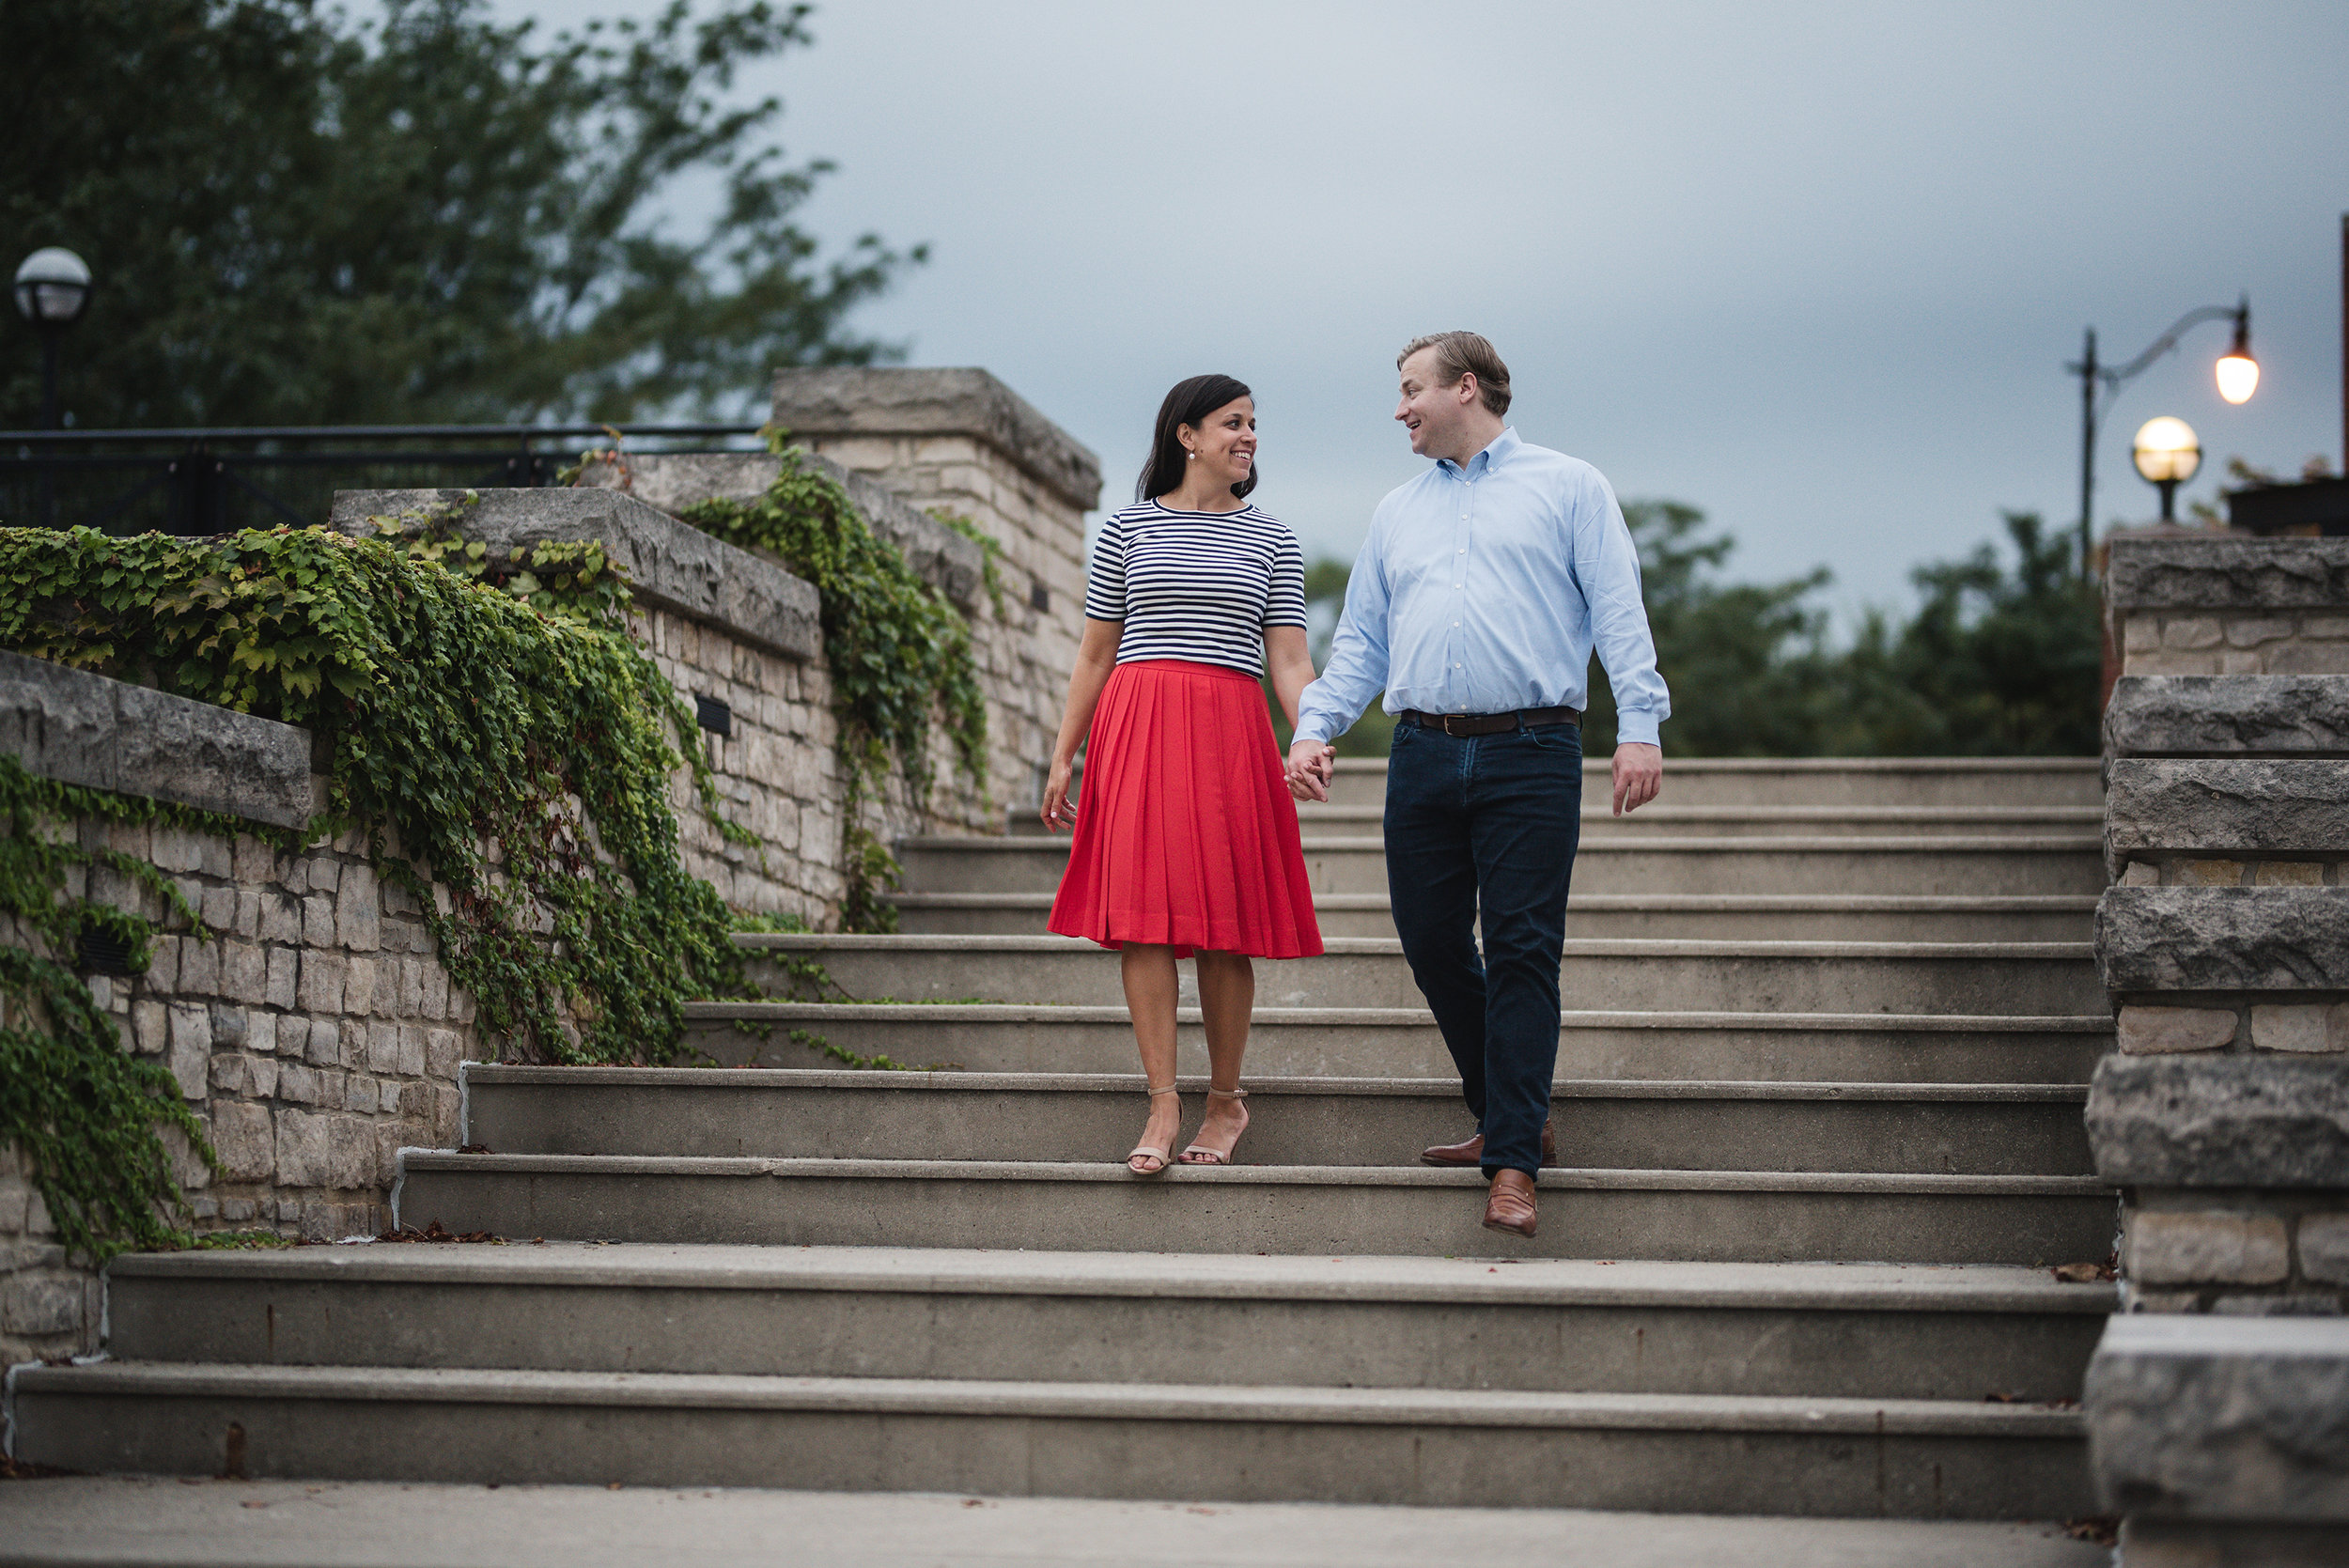 Wedding Photographer in Columbus Ohio North Bank Park Pavillion Engagement